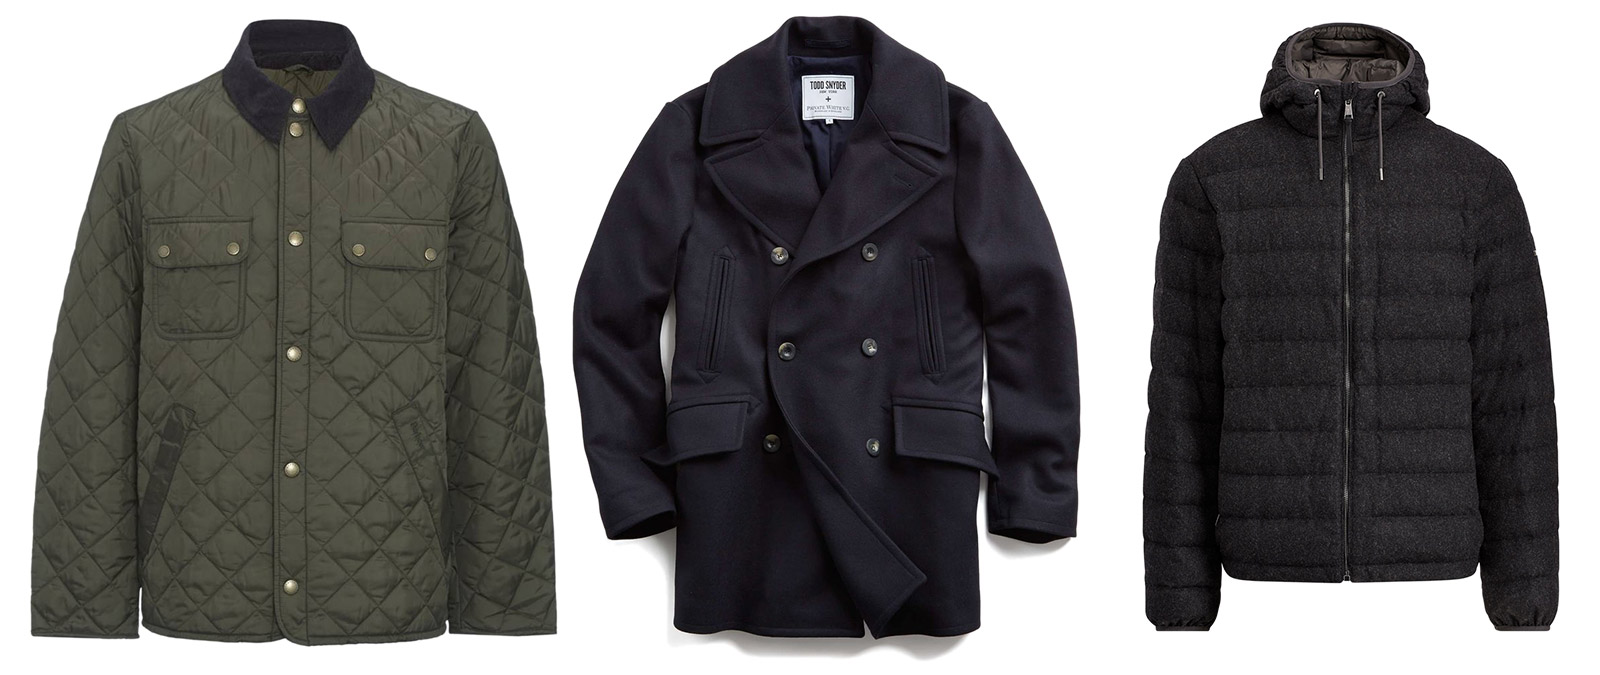 fall winter outerwear options